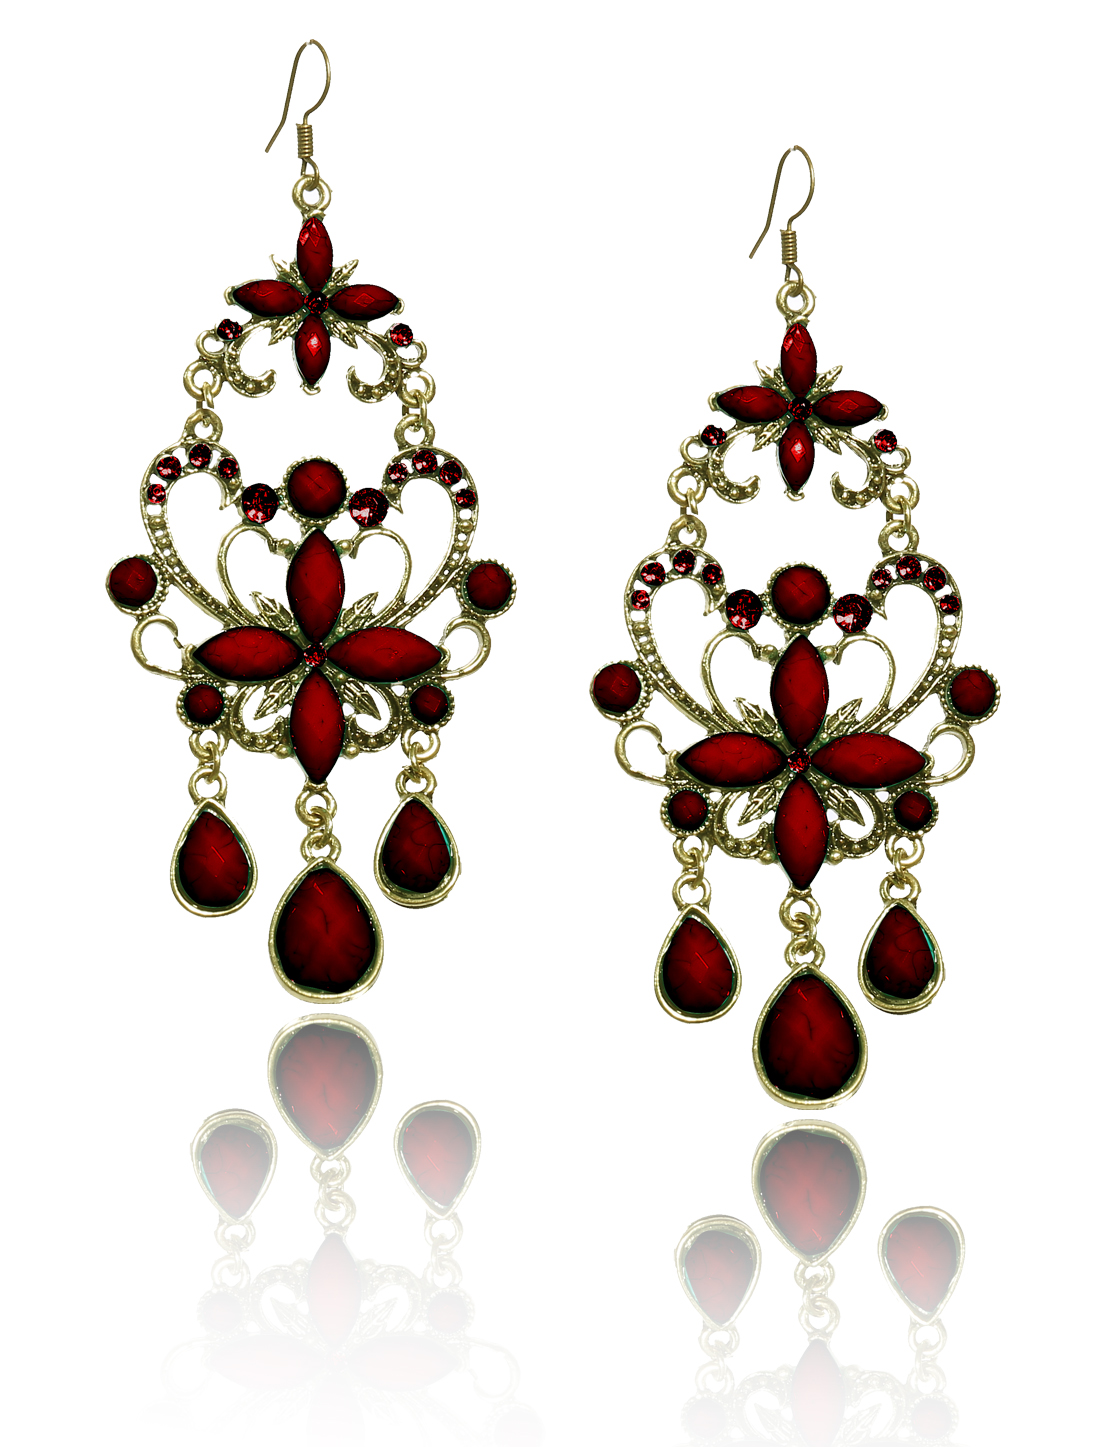 Women Retro Red Cross Shaped Crystal Resin Drop Dangle Hook Earring Ear Stud